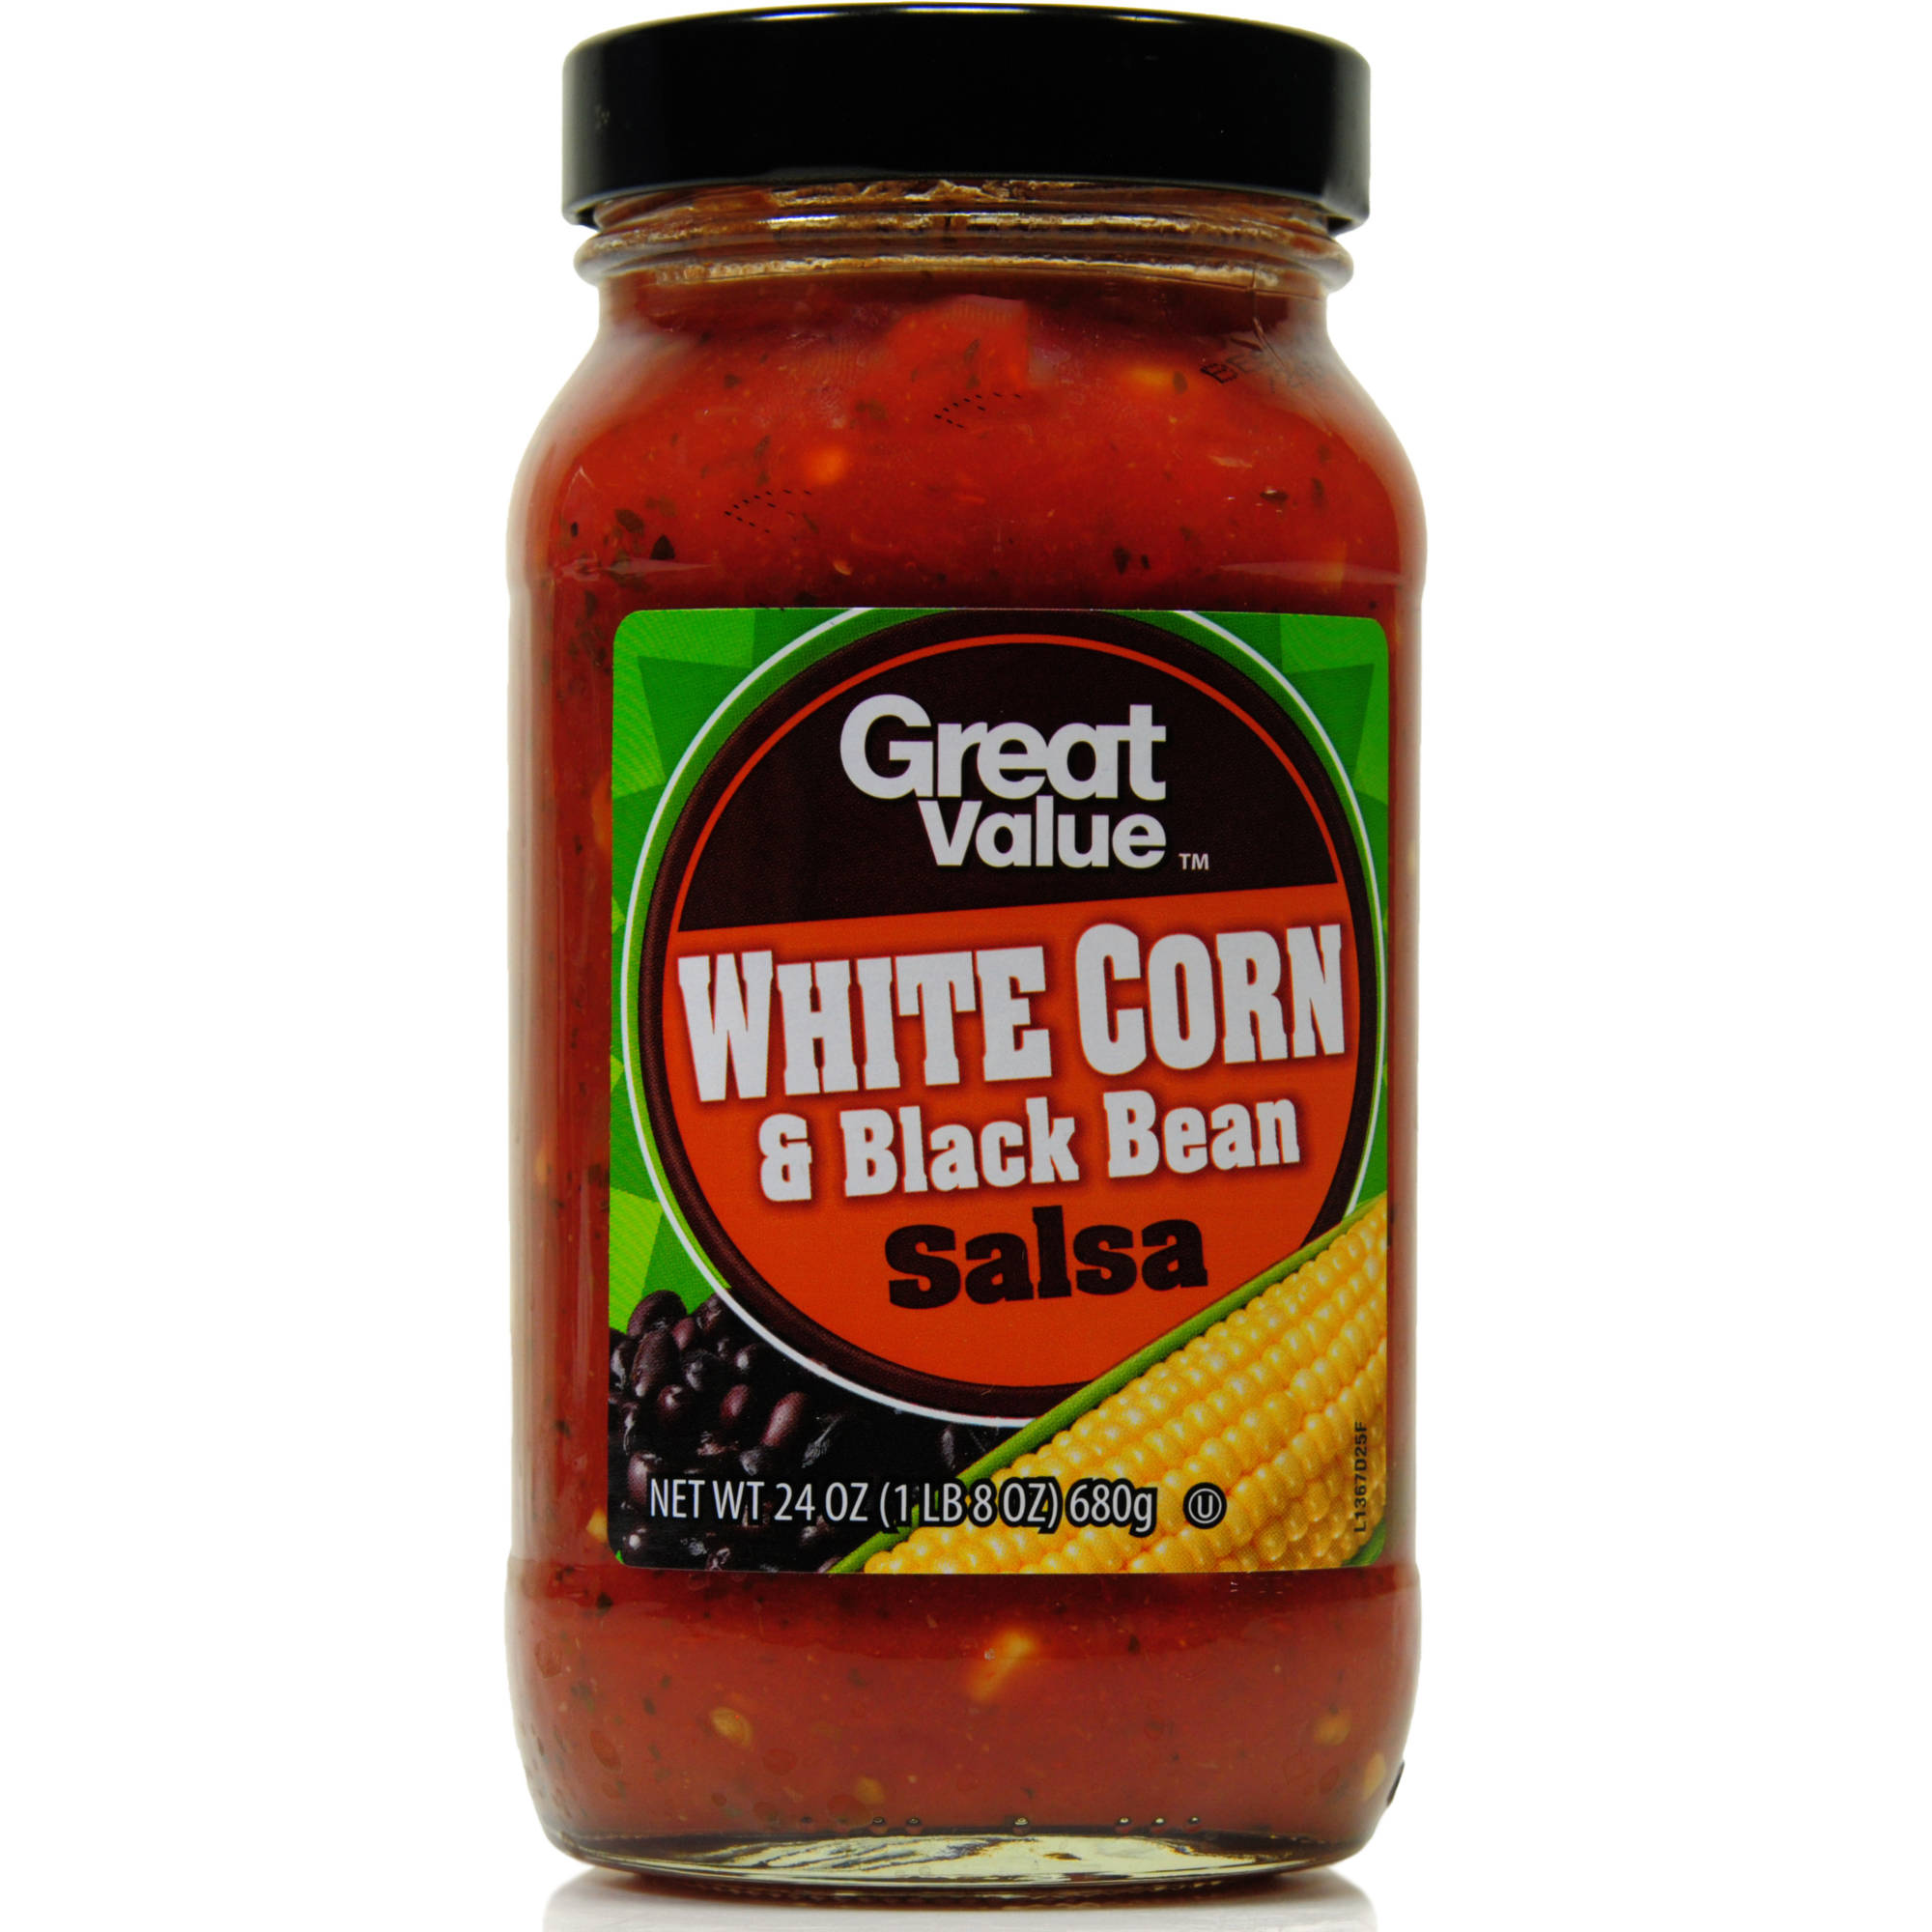 Great Value White Corn & Black Bean Salsa, 24 oz